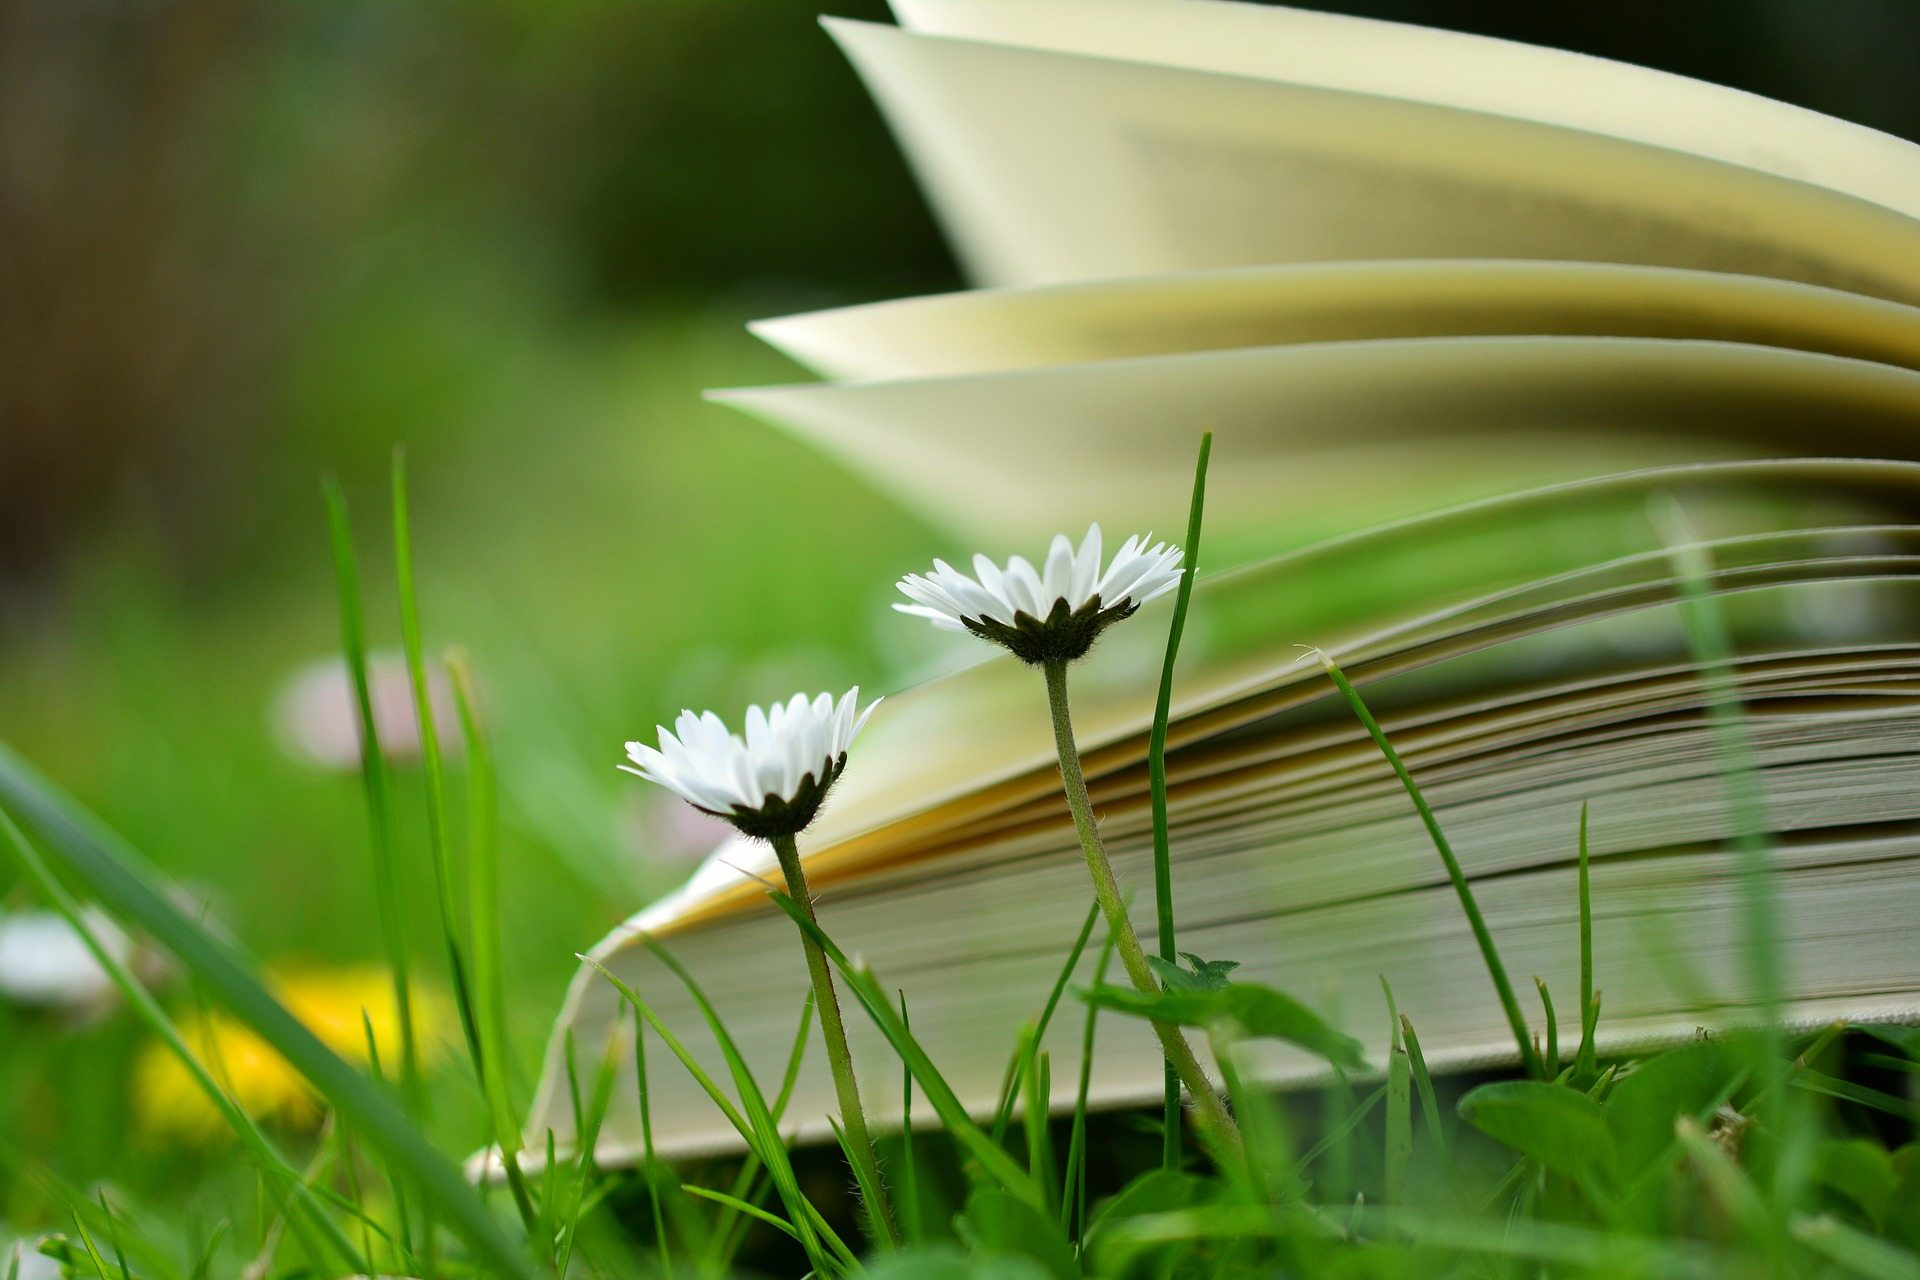 Summer reading for pleasure - book in the grass